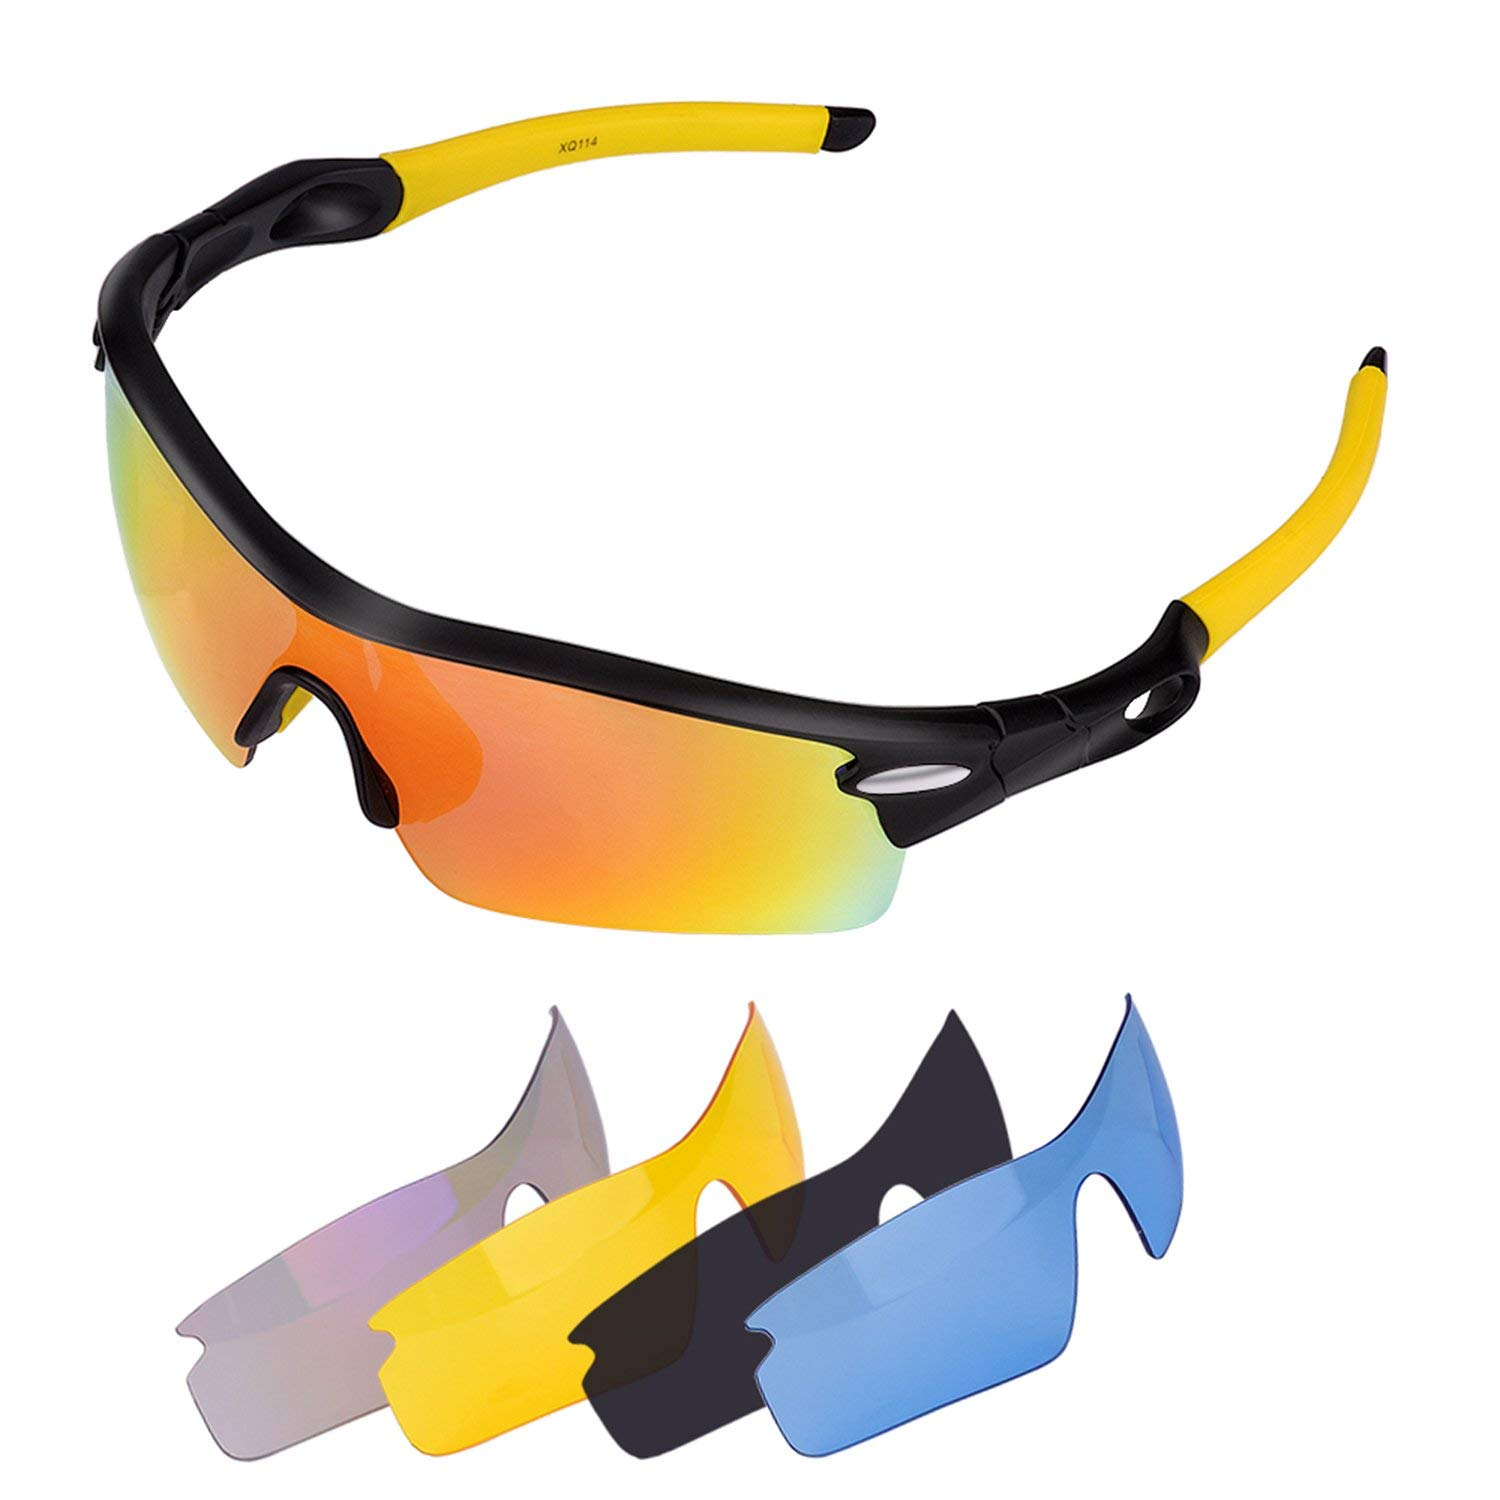 c2a82301f6 Get Quotations · Tager Polarized Sports Sunglasses Glasses with 5Set  Interchangeable Lenses for cycling